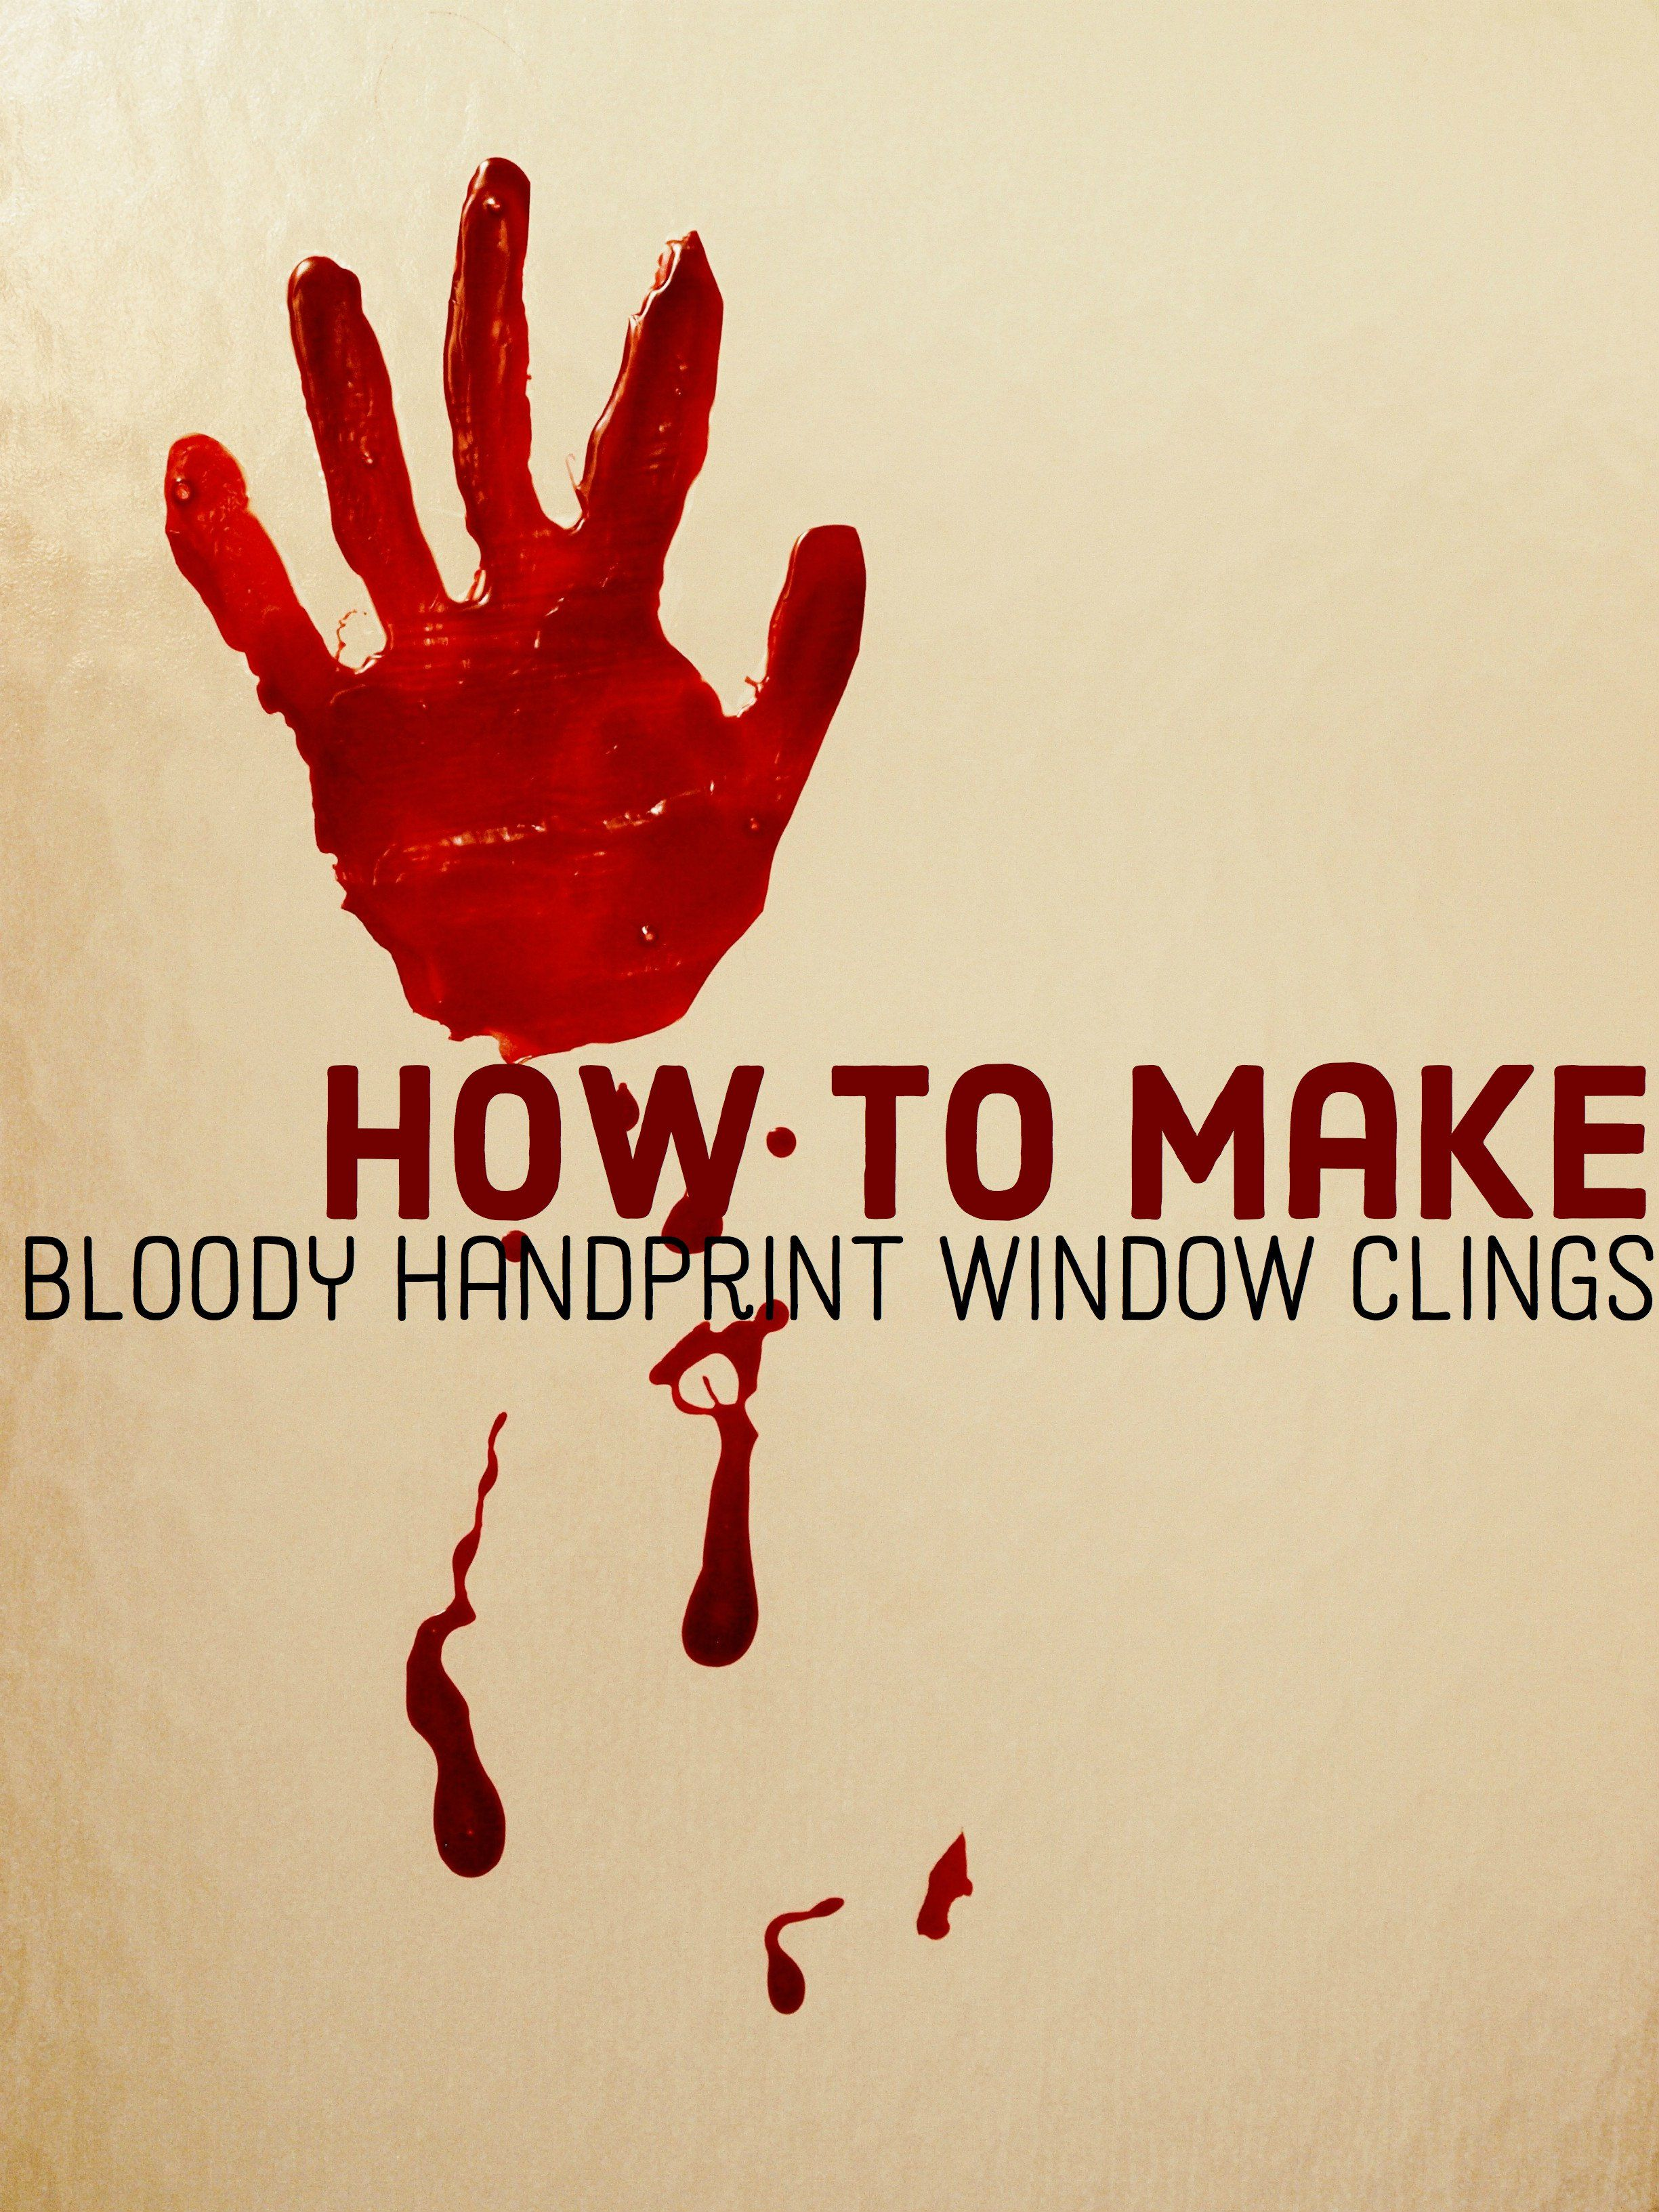 Do it yourself bloody handprint window clings halloween ideas diy bloody handprint window clings for halloween use elmers glue all and food coloring to make spooky decorations for halloween and haunted houses solutioingenieria Images